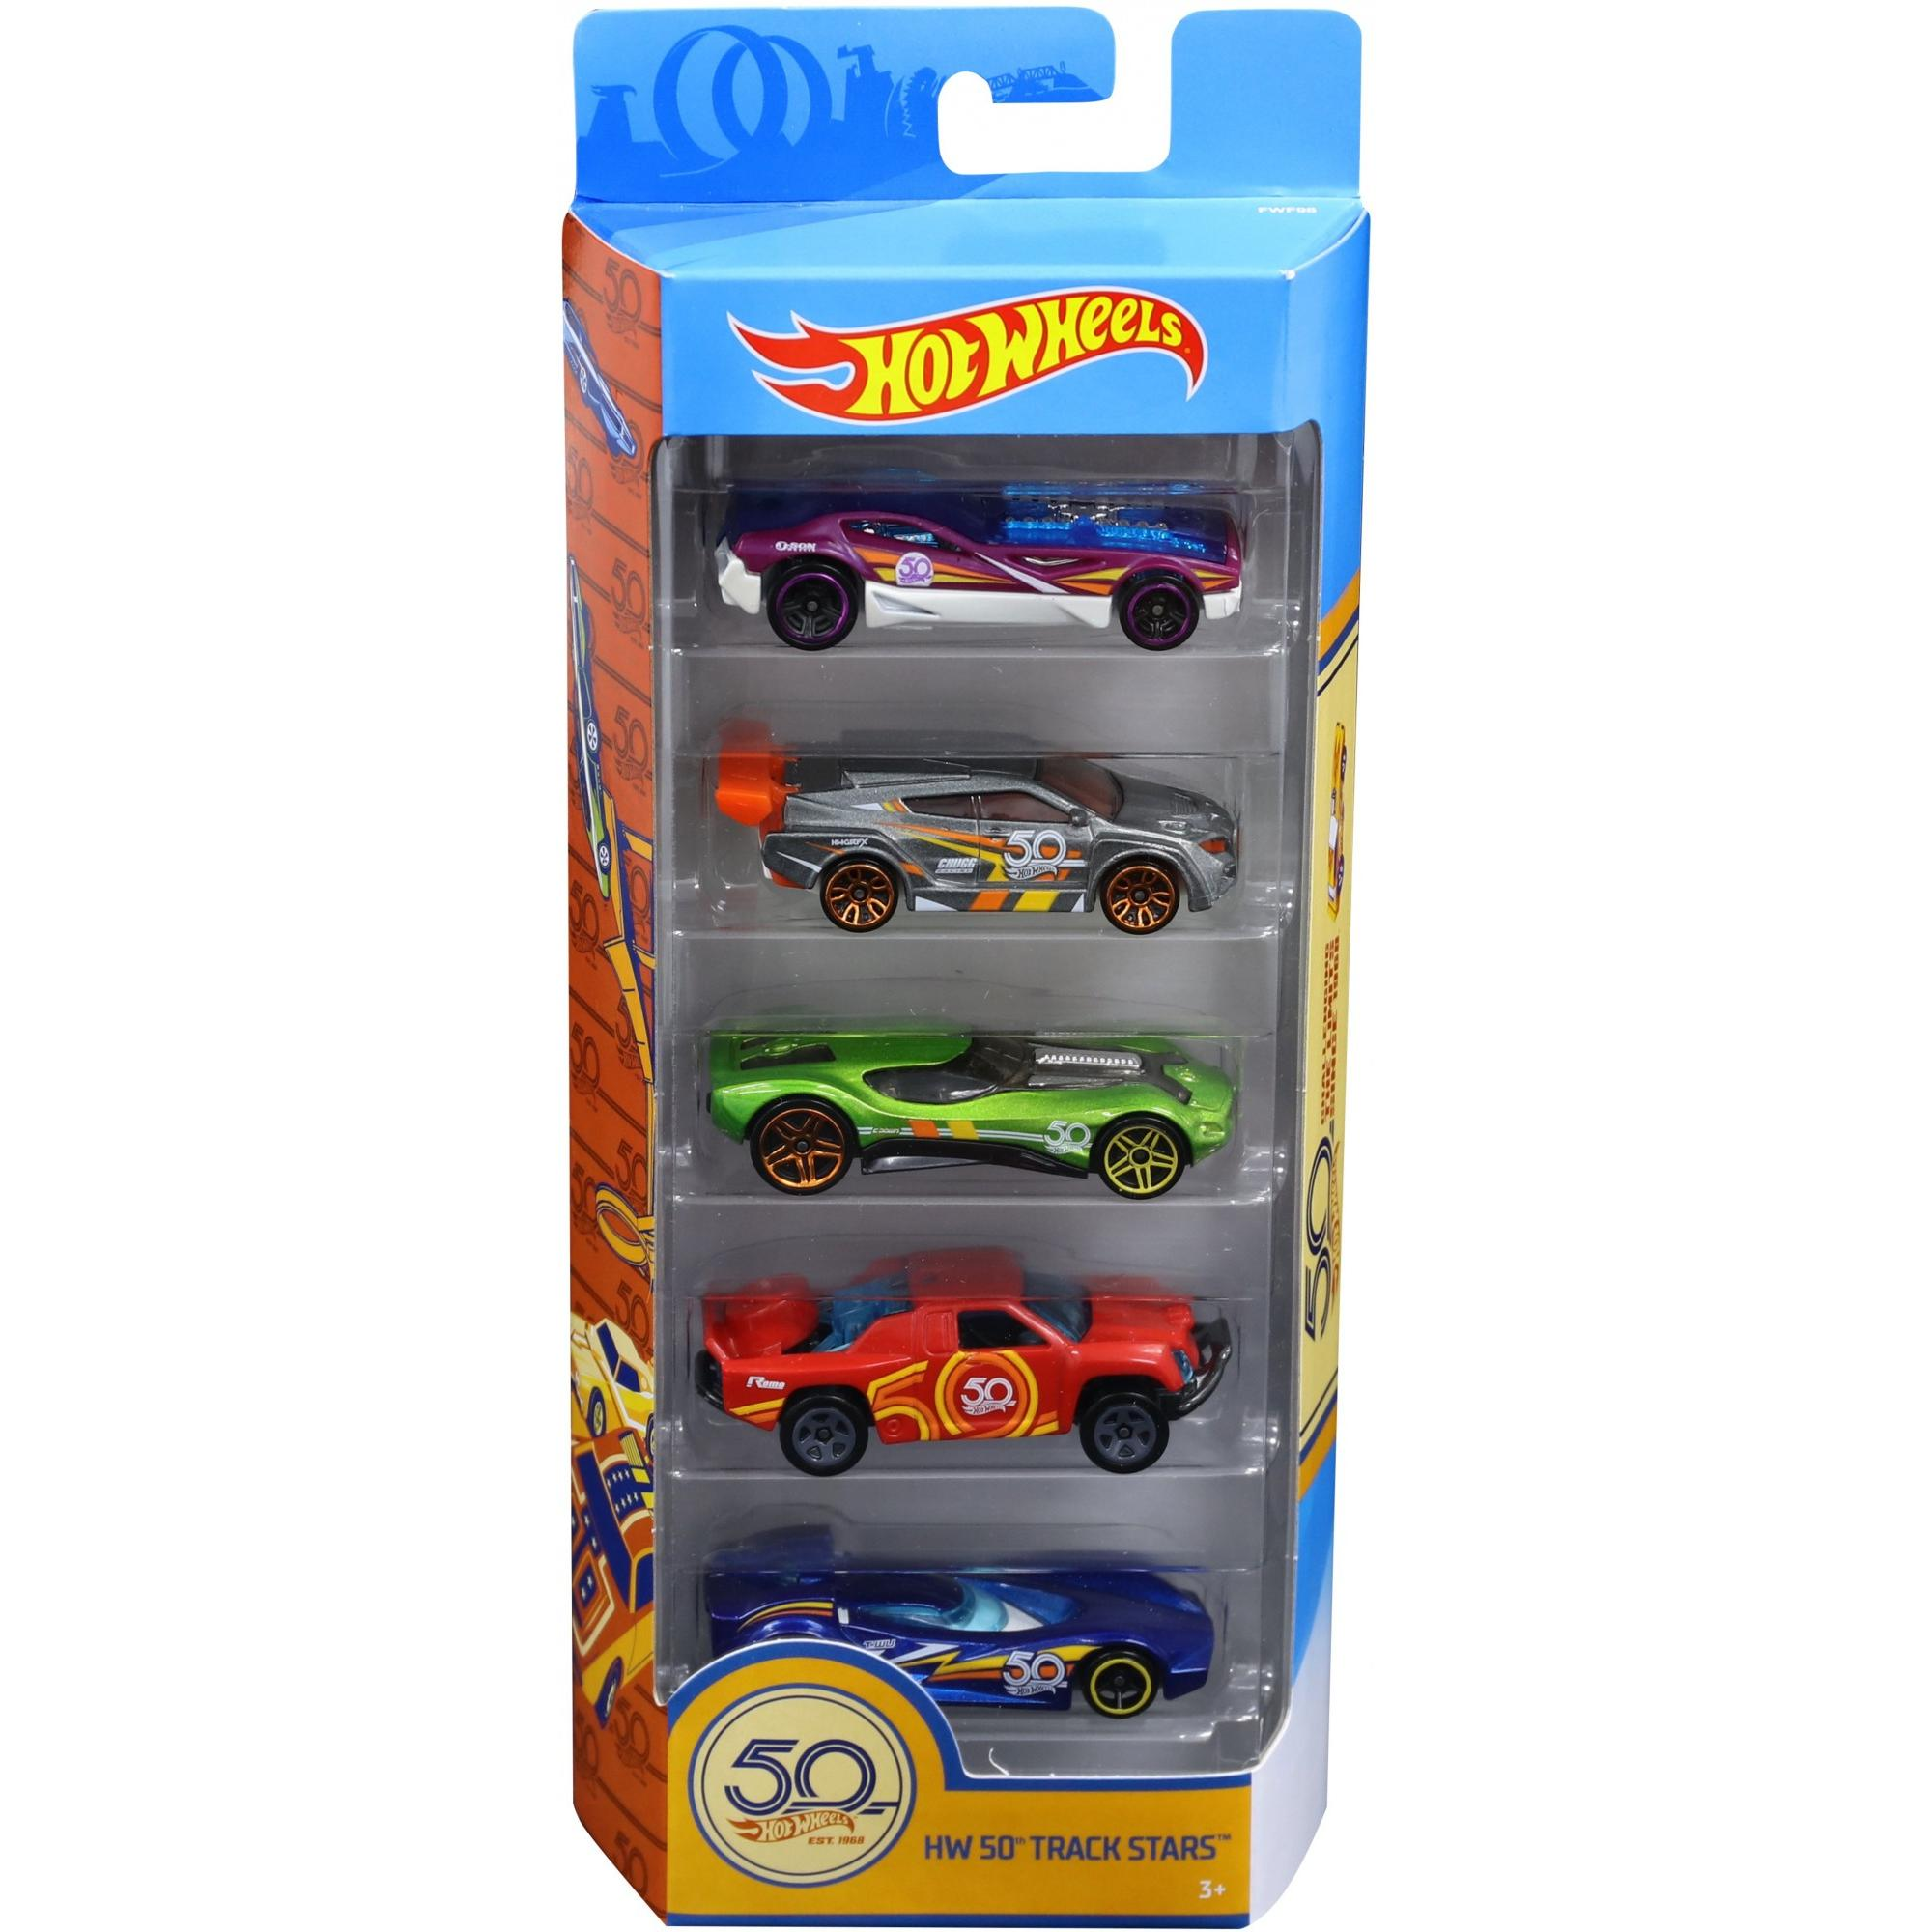 Hot Wheels 50th Anniversary Track Stars 5 Pack by Mattel